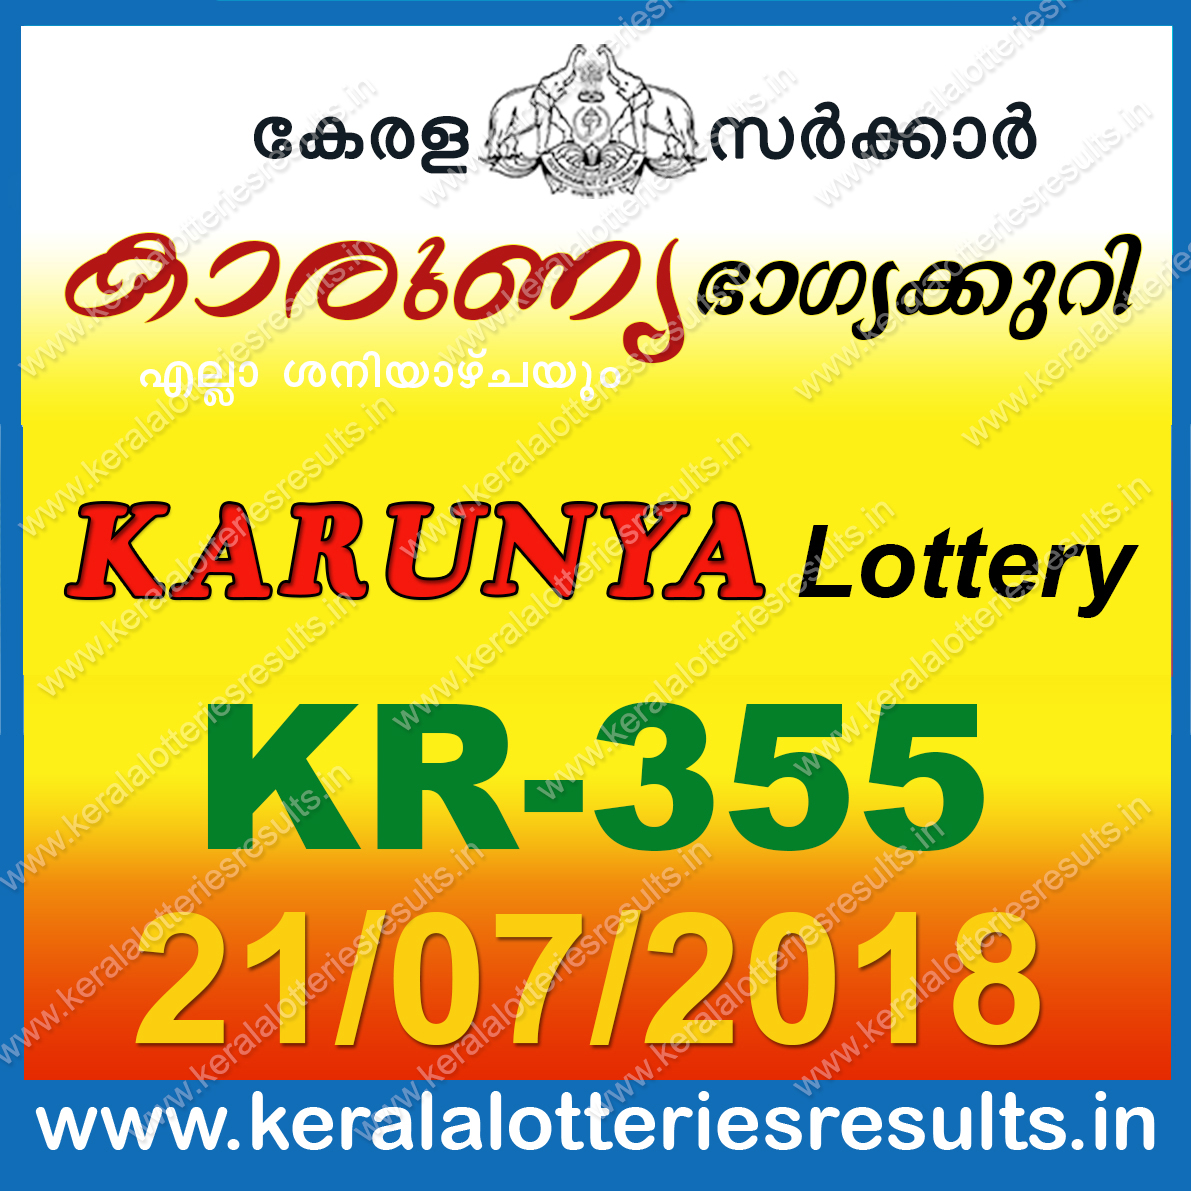 Lottery results for today